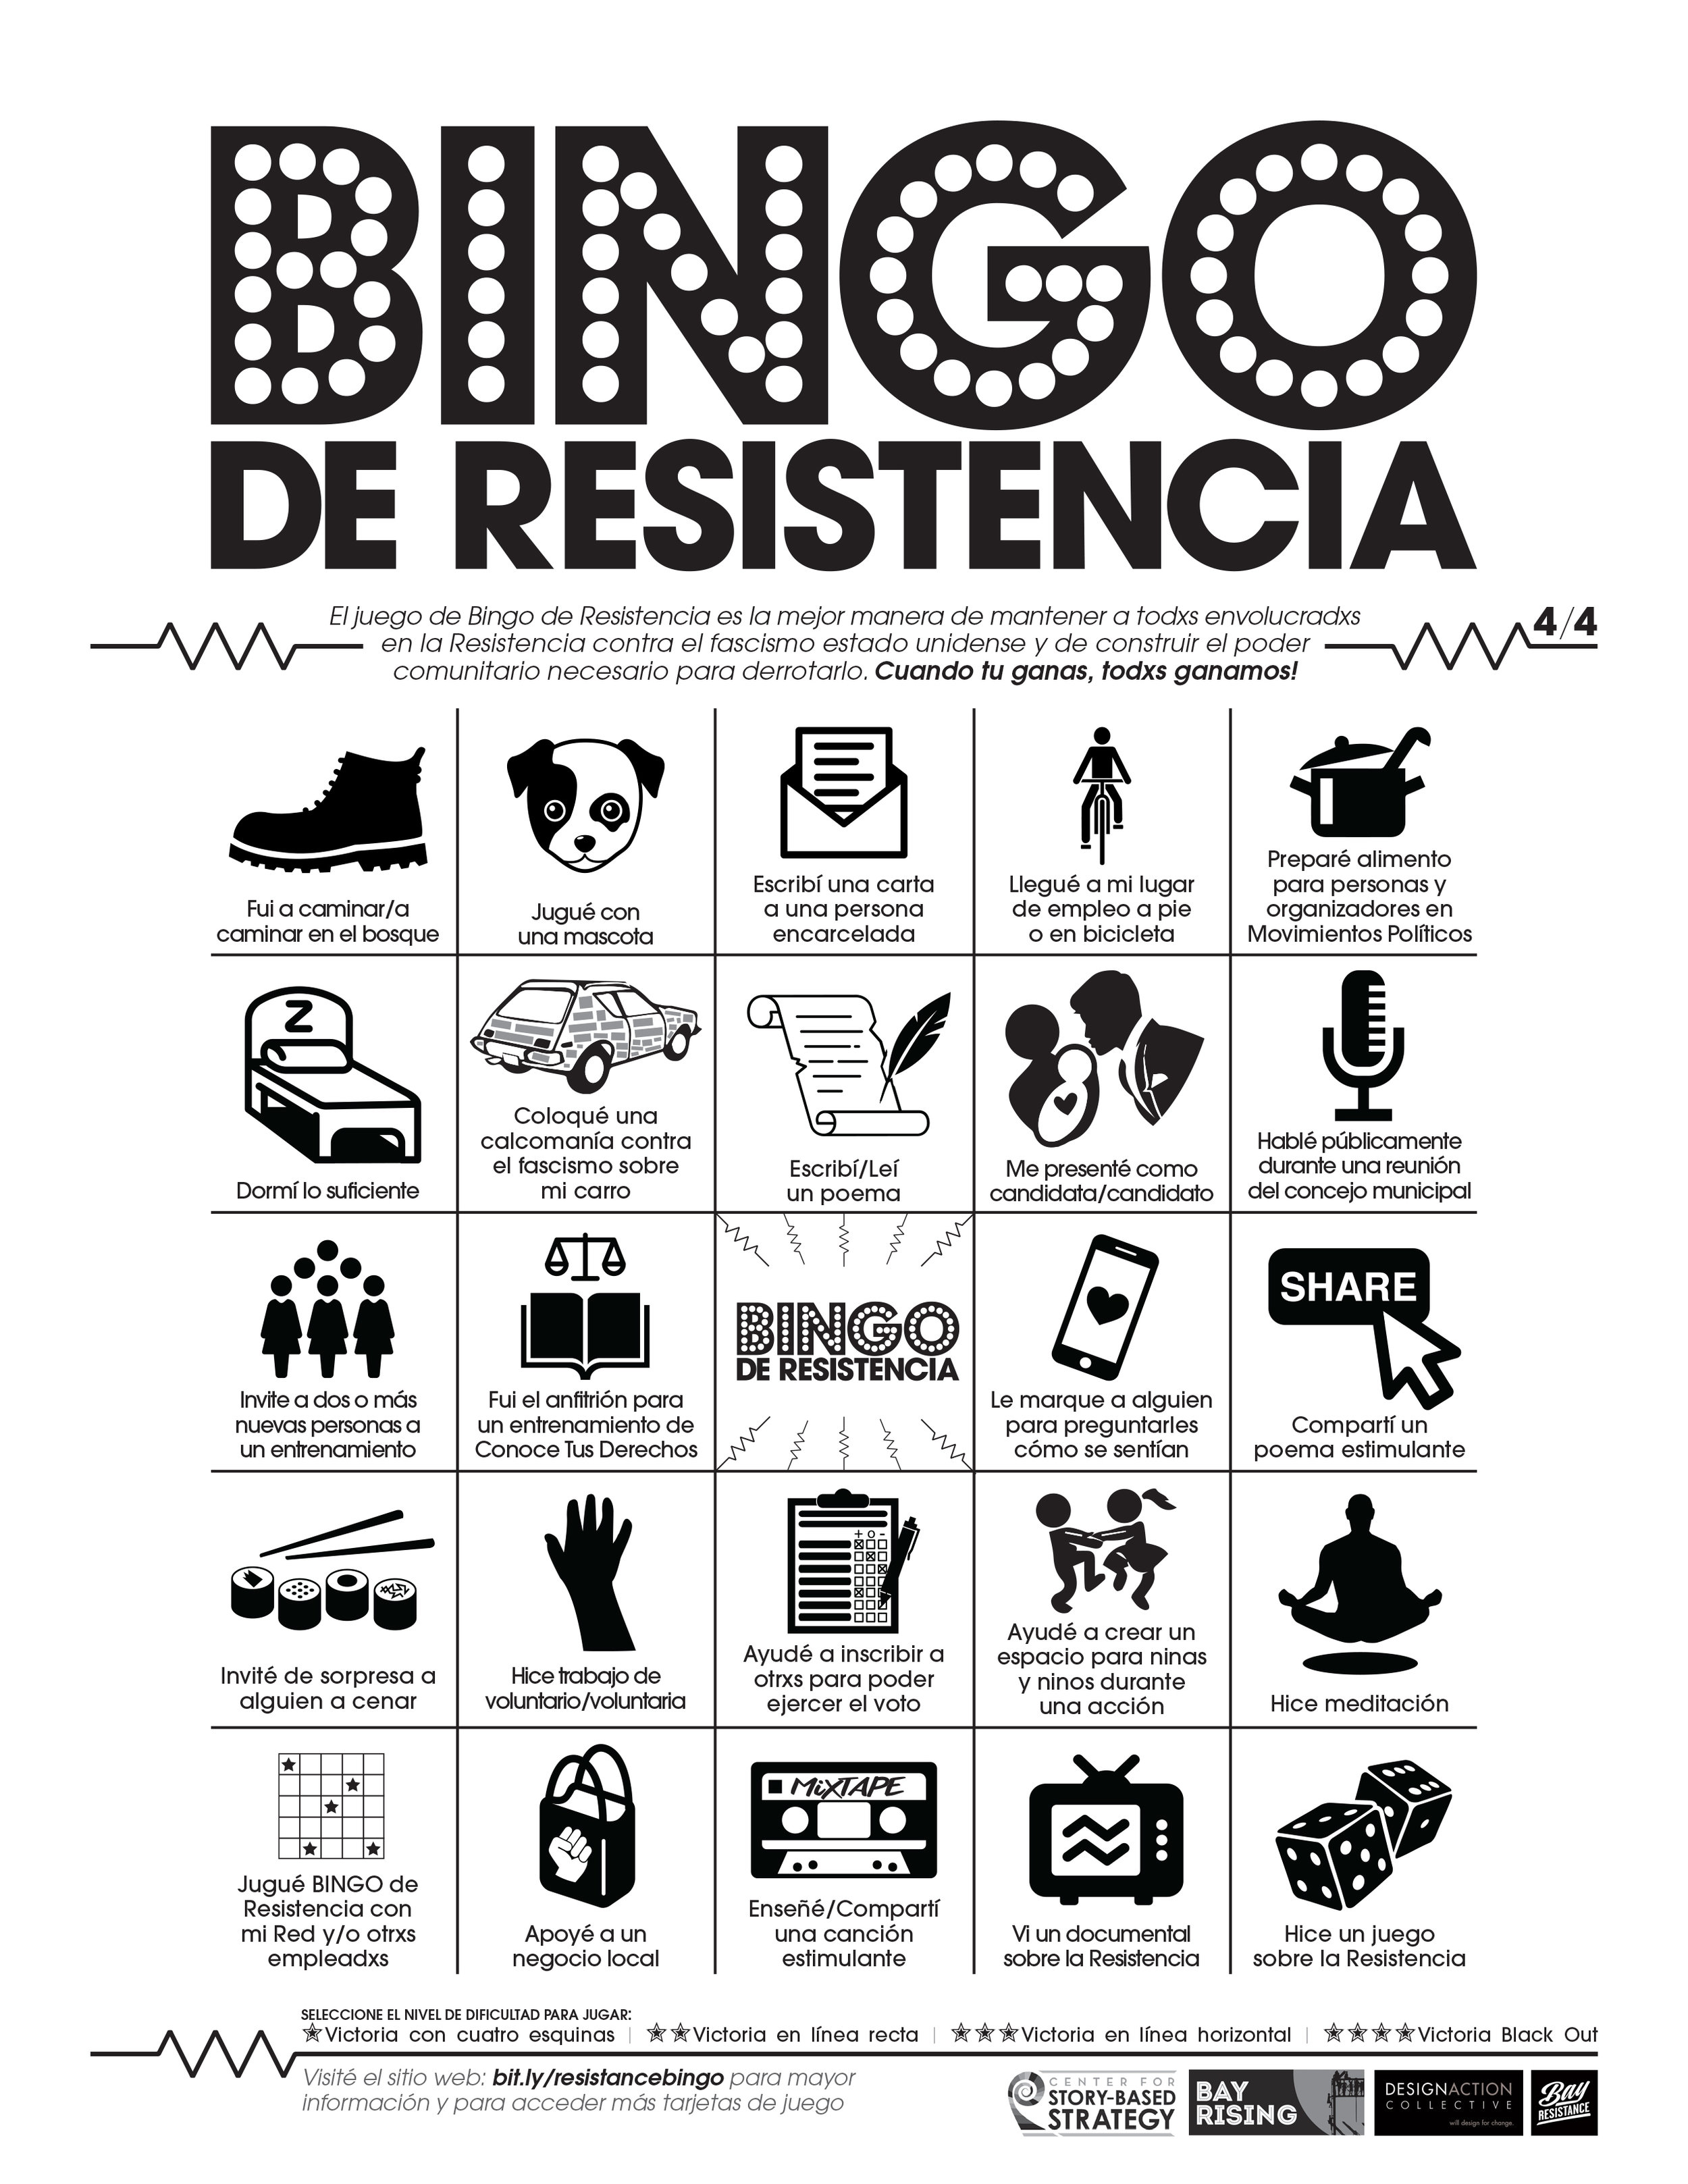 Resistance Bingo — Center for Story-based Strategy